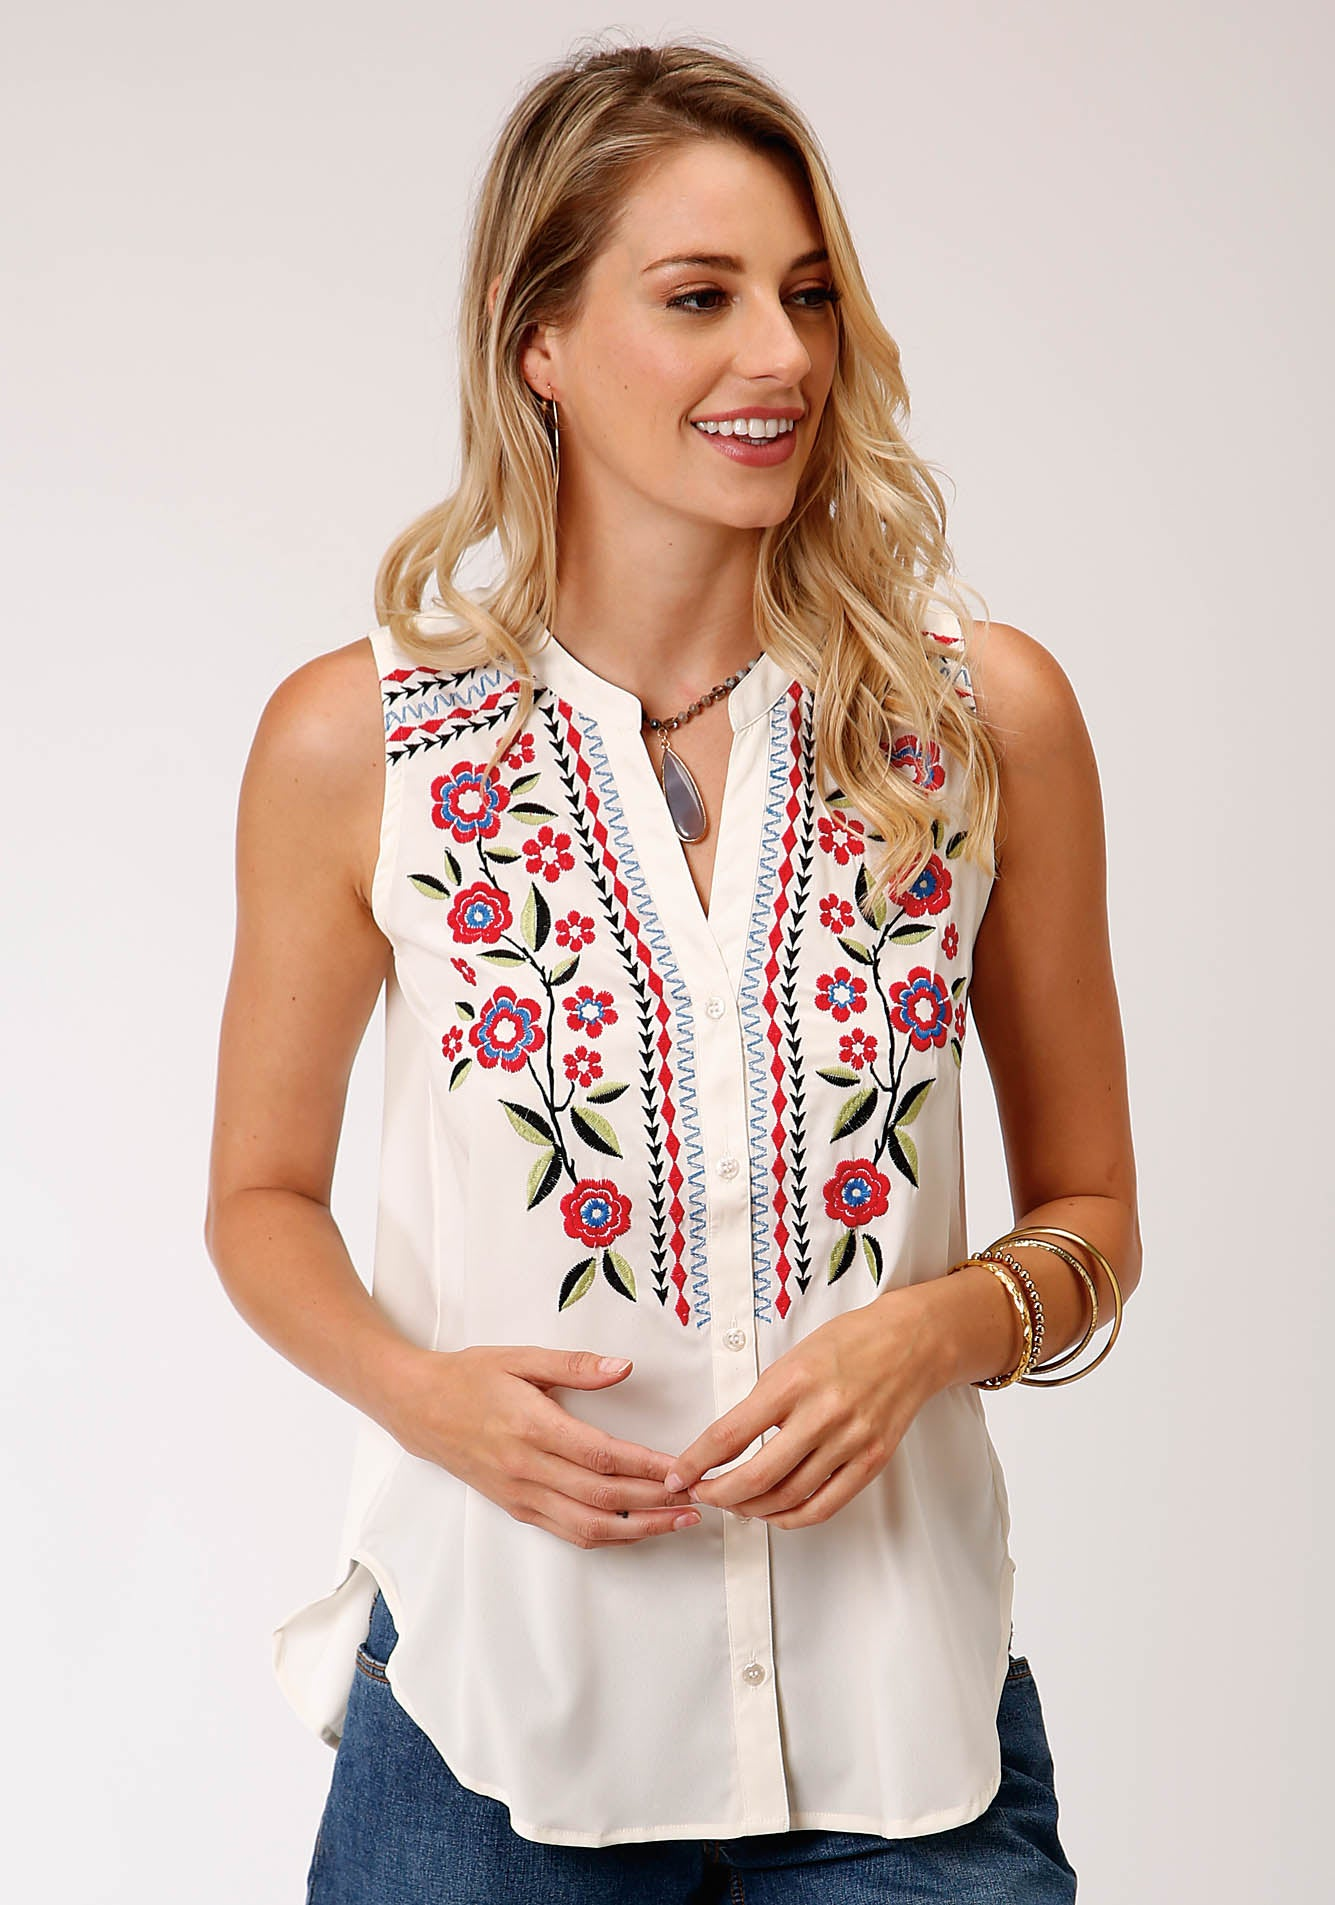 ROPER WOMENS WHITE 00218 POLY CREPE SLVLS TOP STUDIO WEST- WILD BLOSSOMS SLEEVELESS